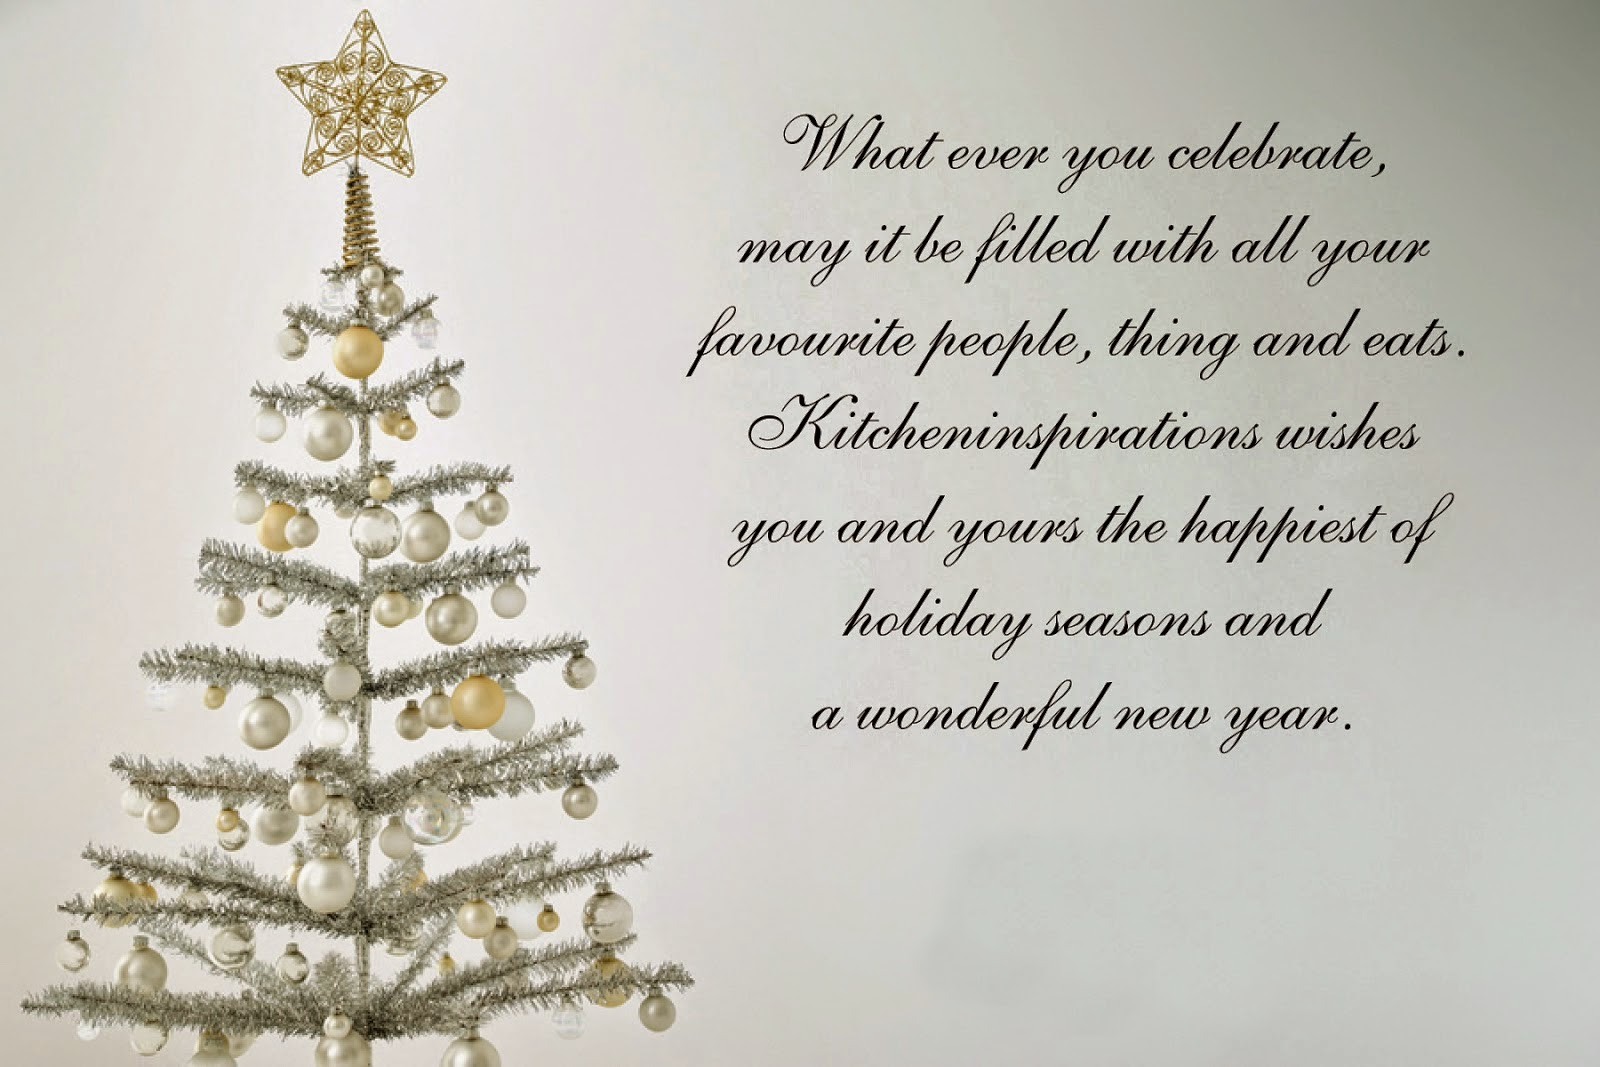 1000 Merry Christmas Wishes Quotes On Pinterest: 1000+ Images About Inspirational Quotes On Pinterest